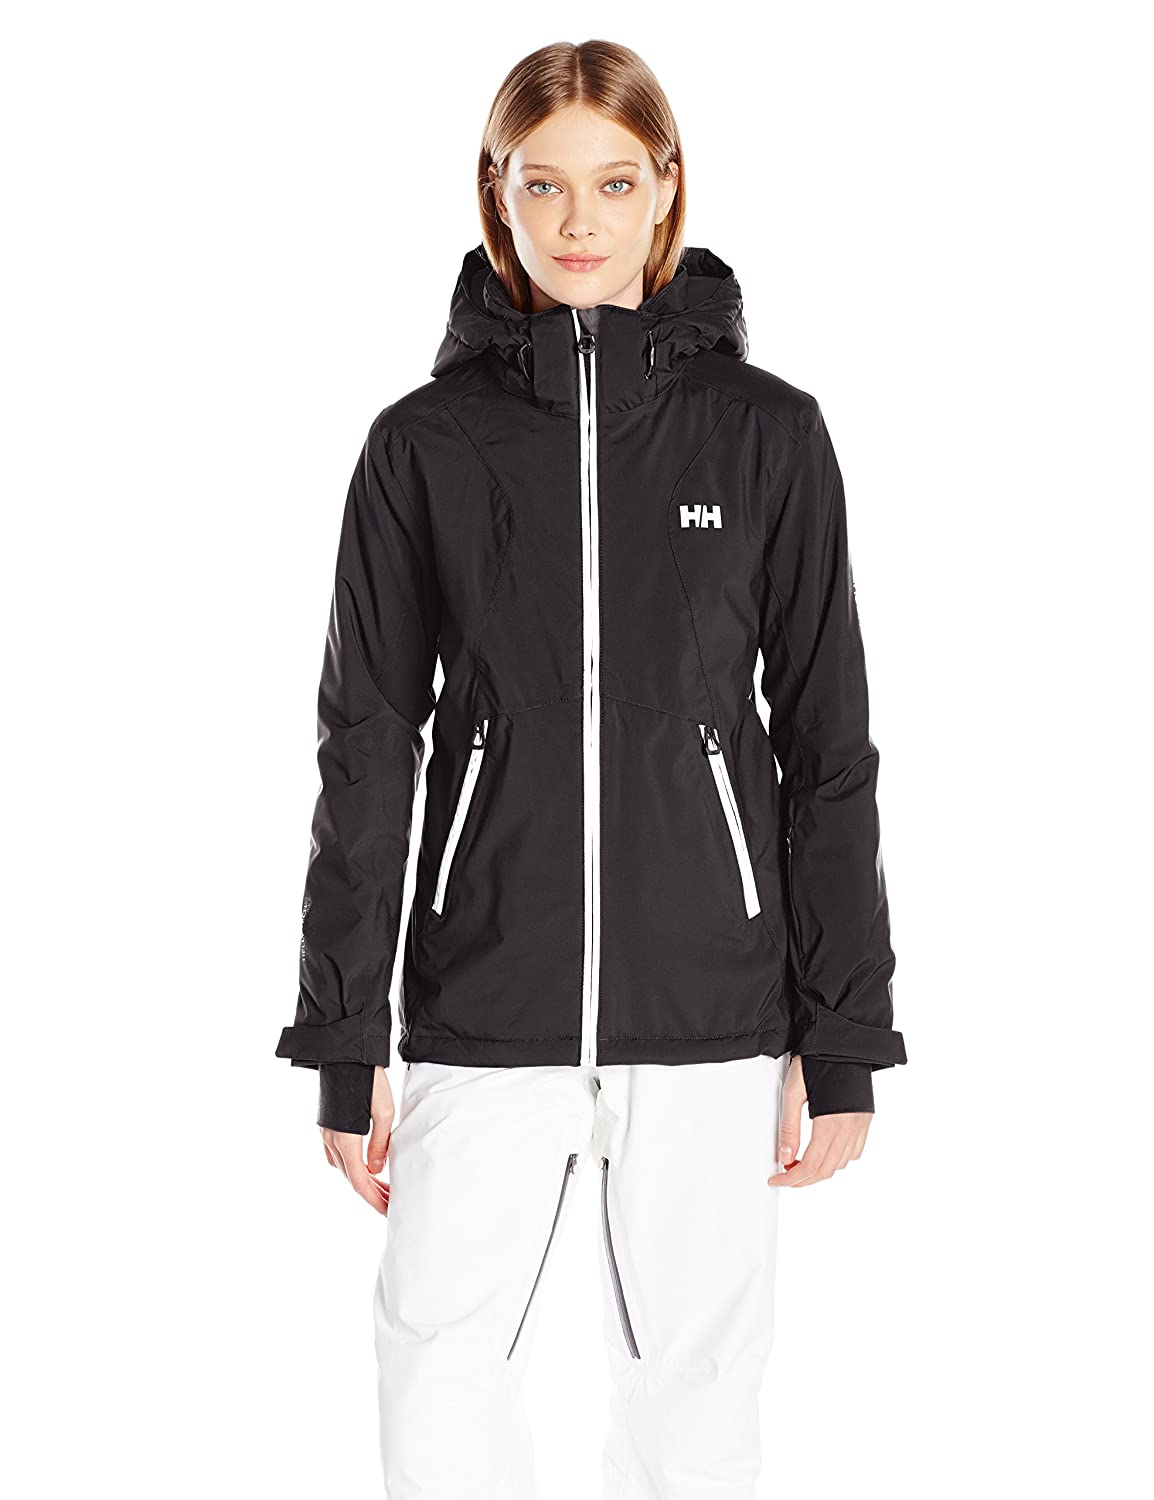 Black Women's Spirit Insulated Jacket